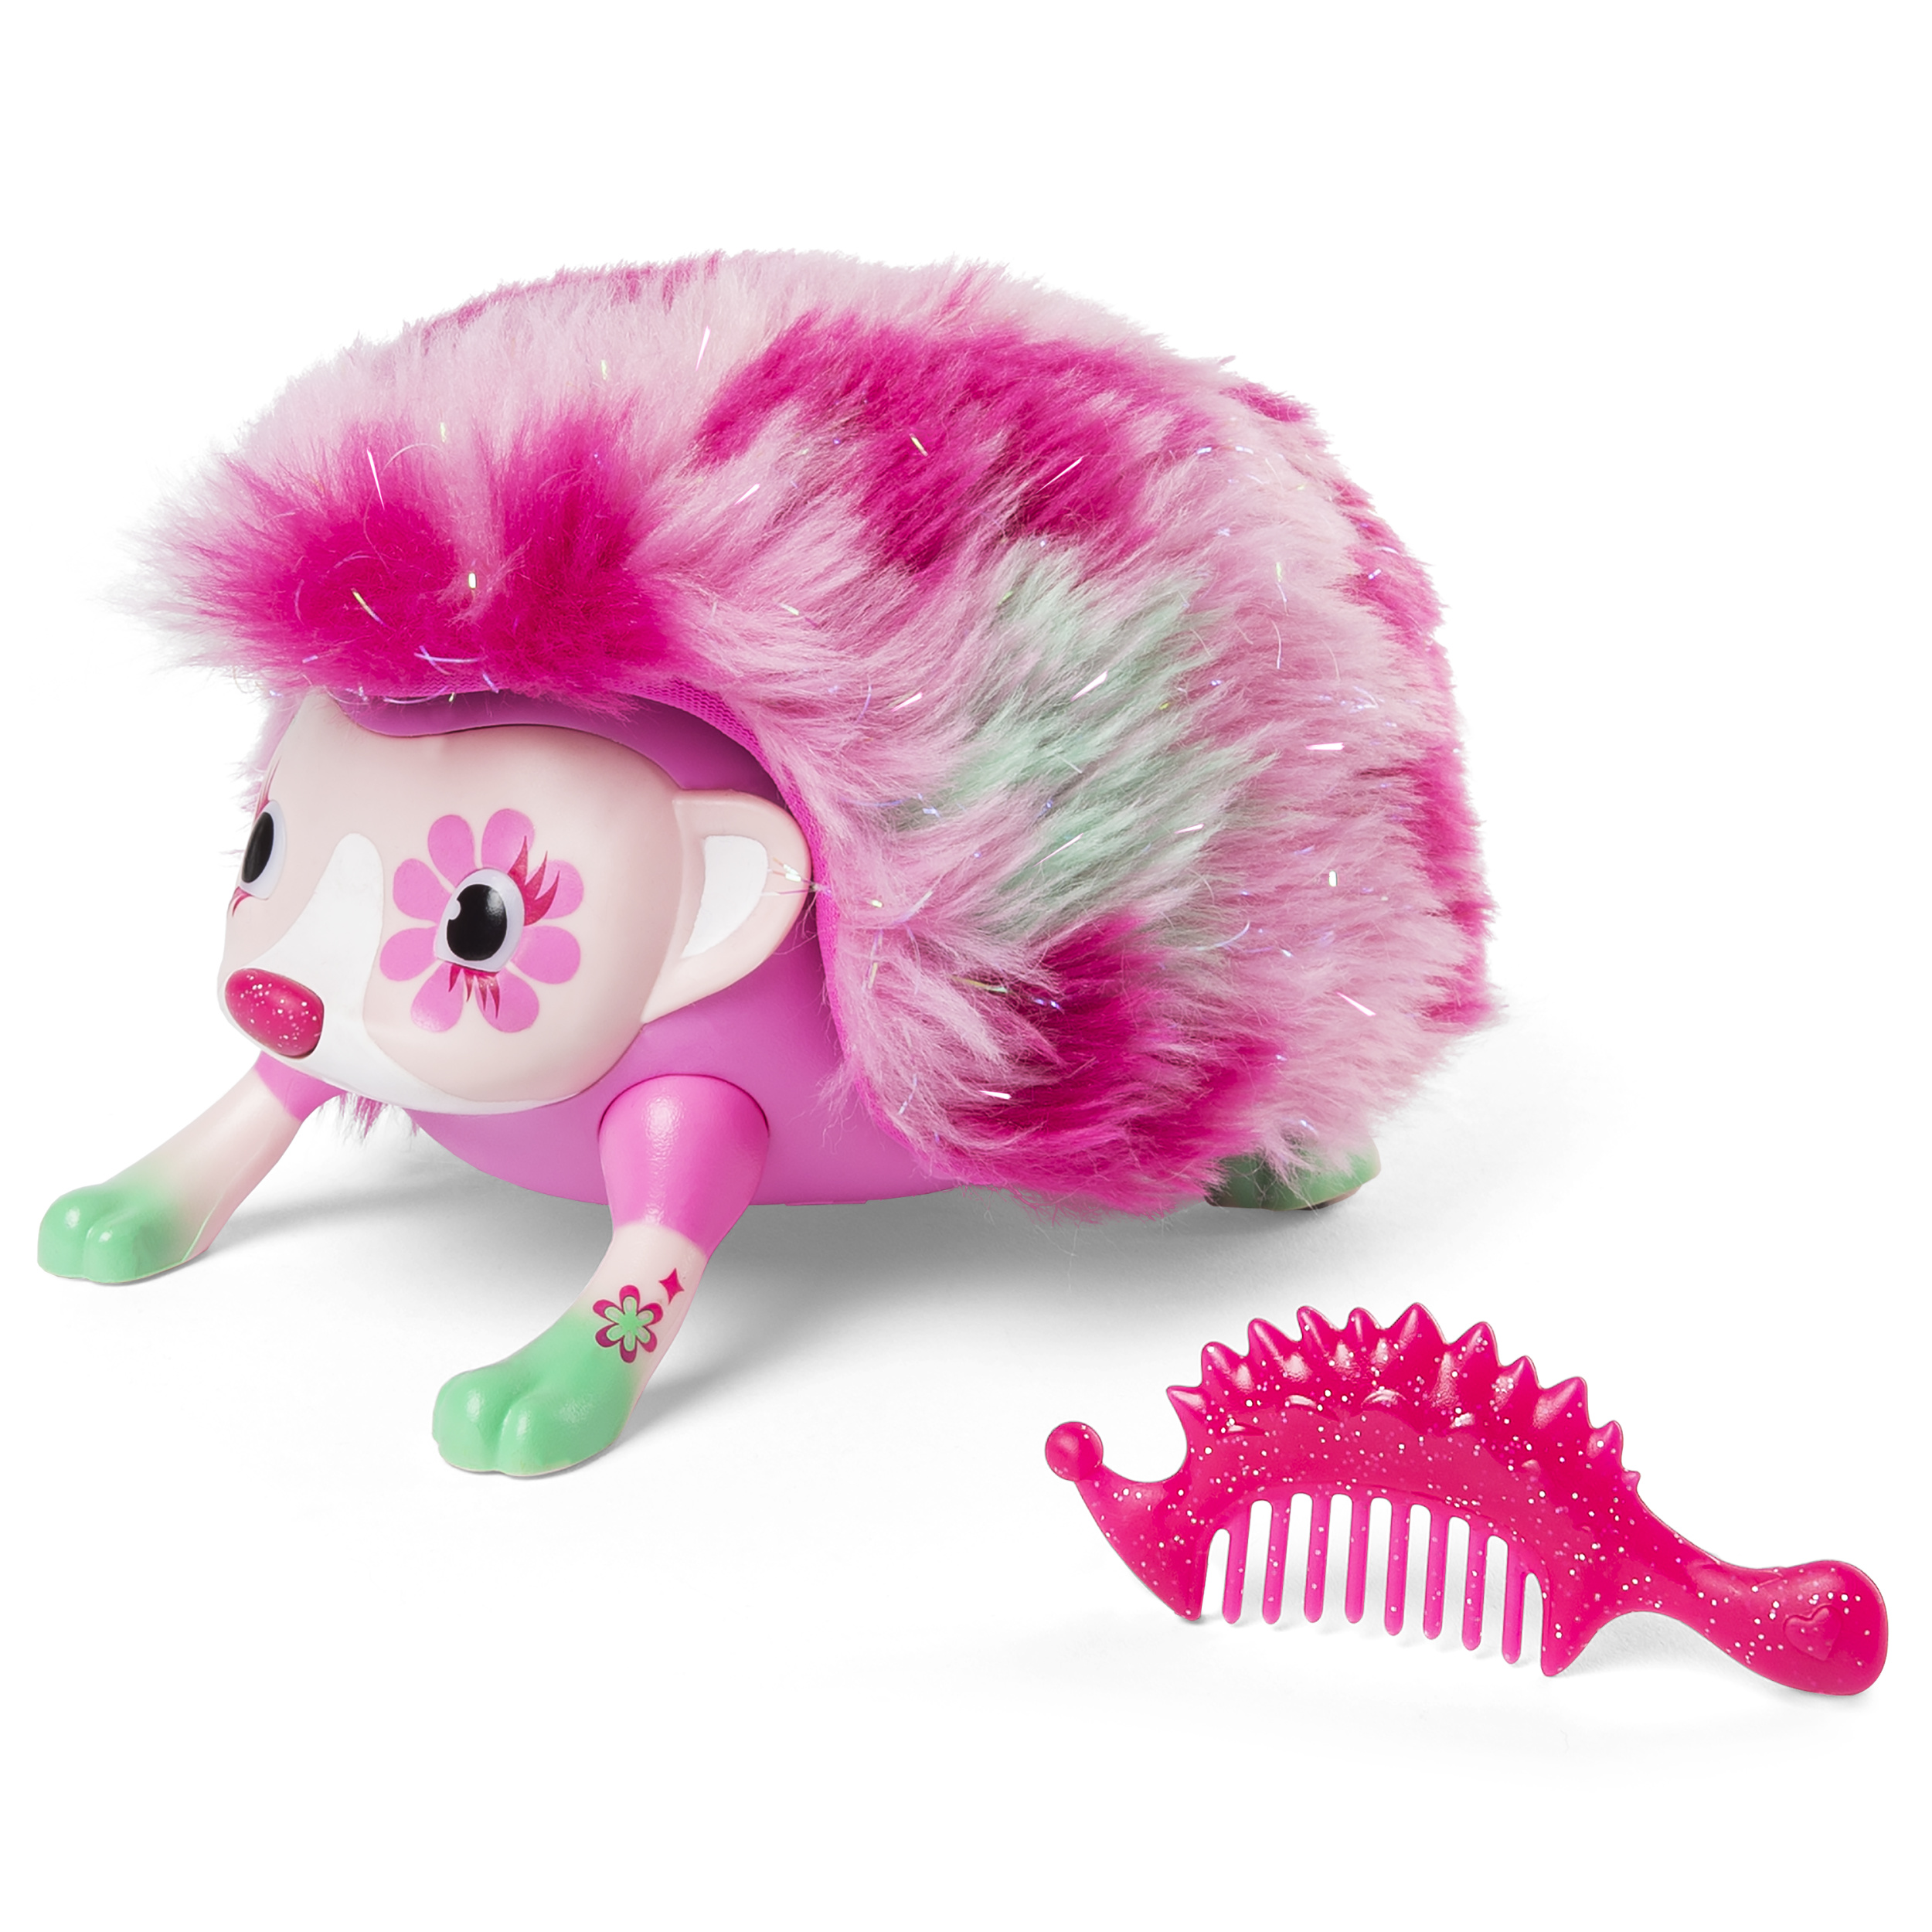 Zoomer Hedgiez, Rosie, Interactive Hedgehog with Lights, Sounds and Sensors, by Spin Master